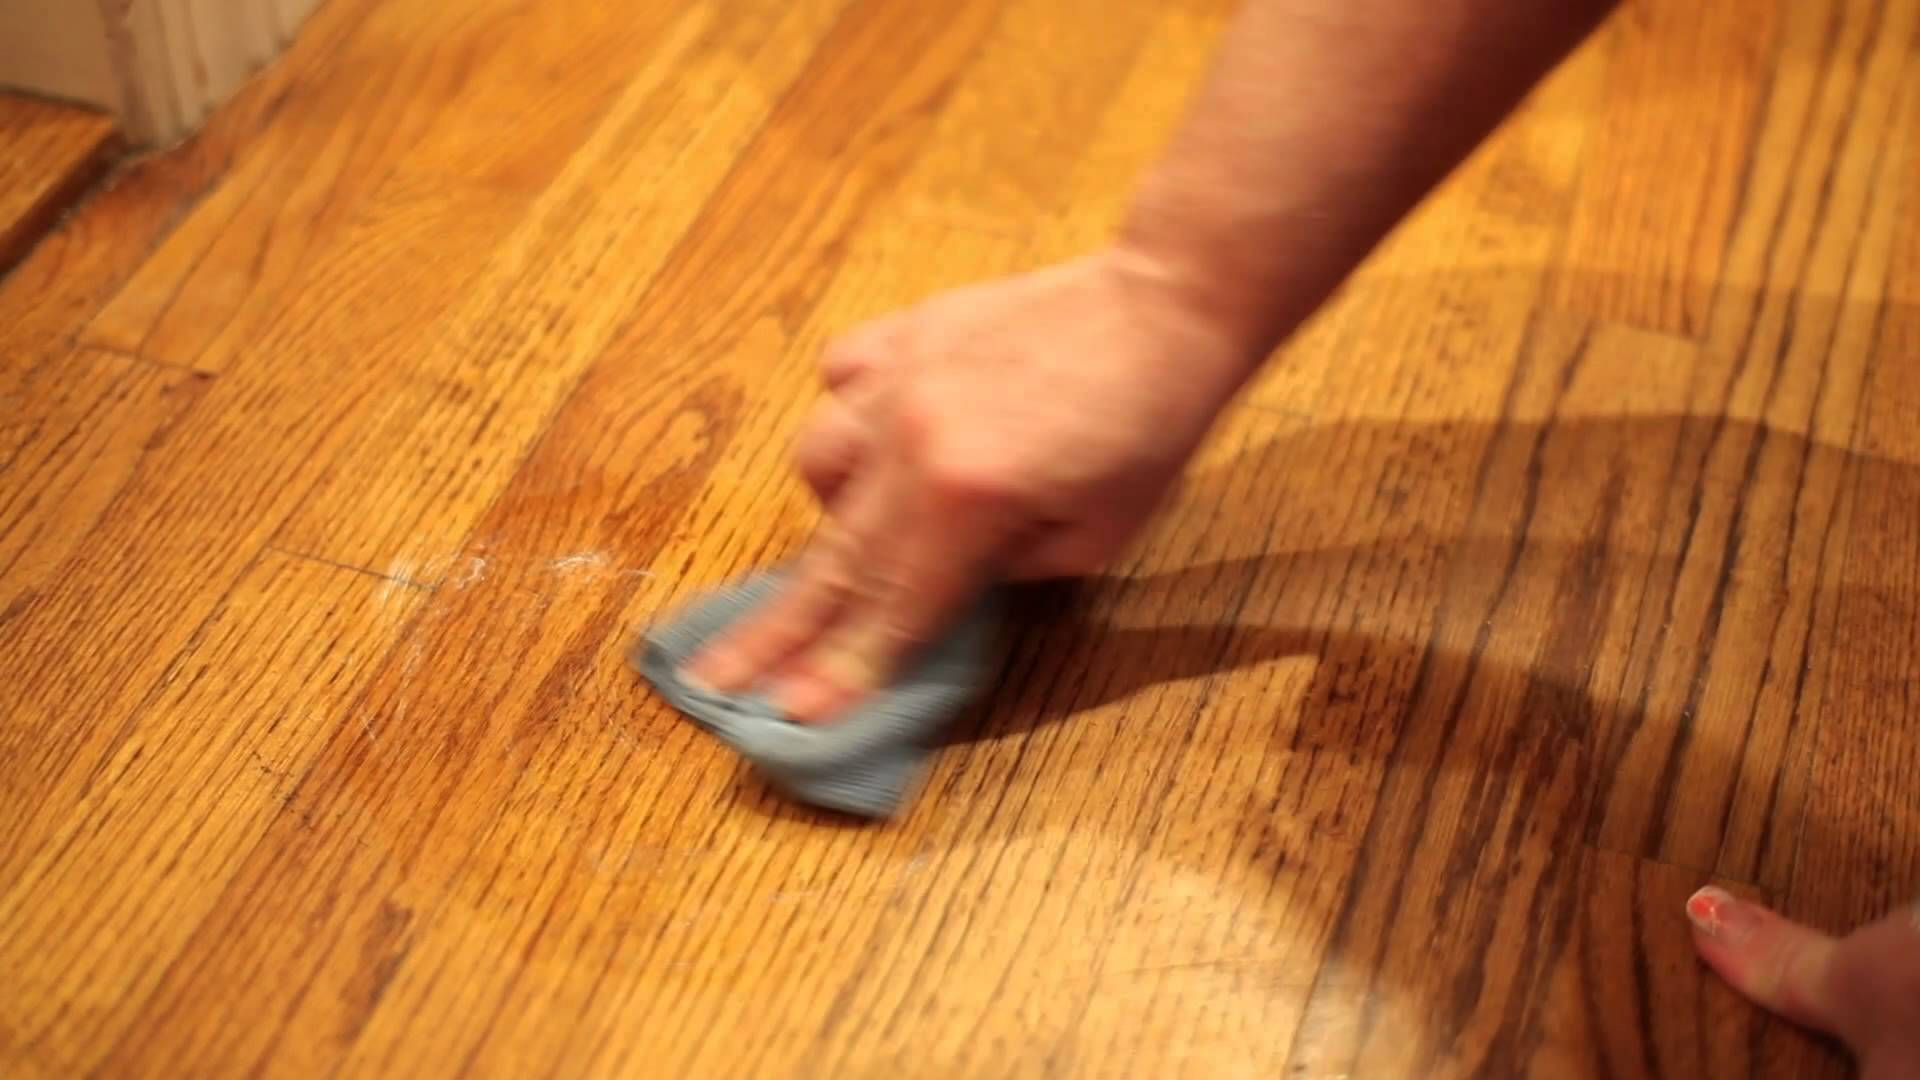 How To Get Rid Of Skid Marks On Floor